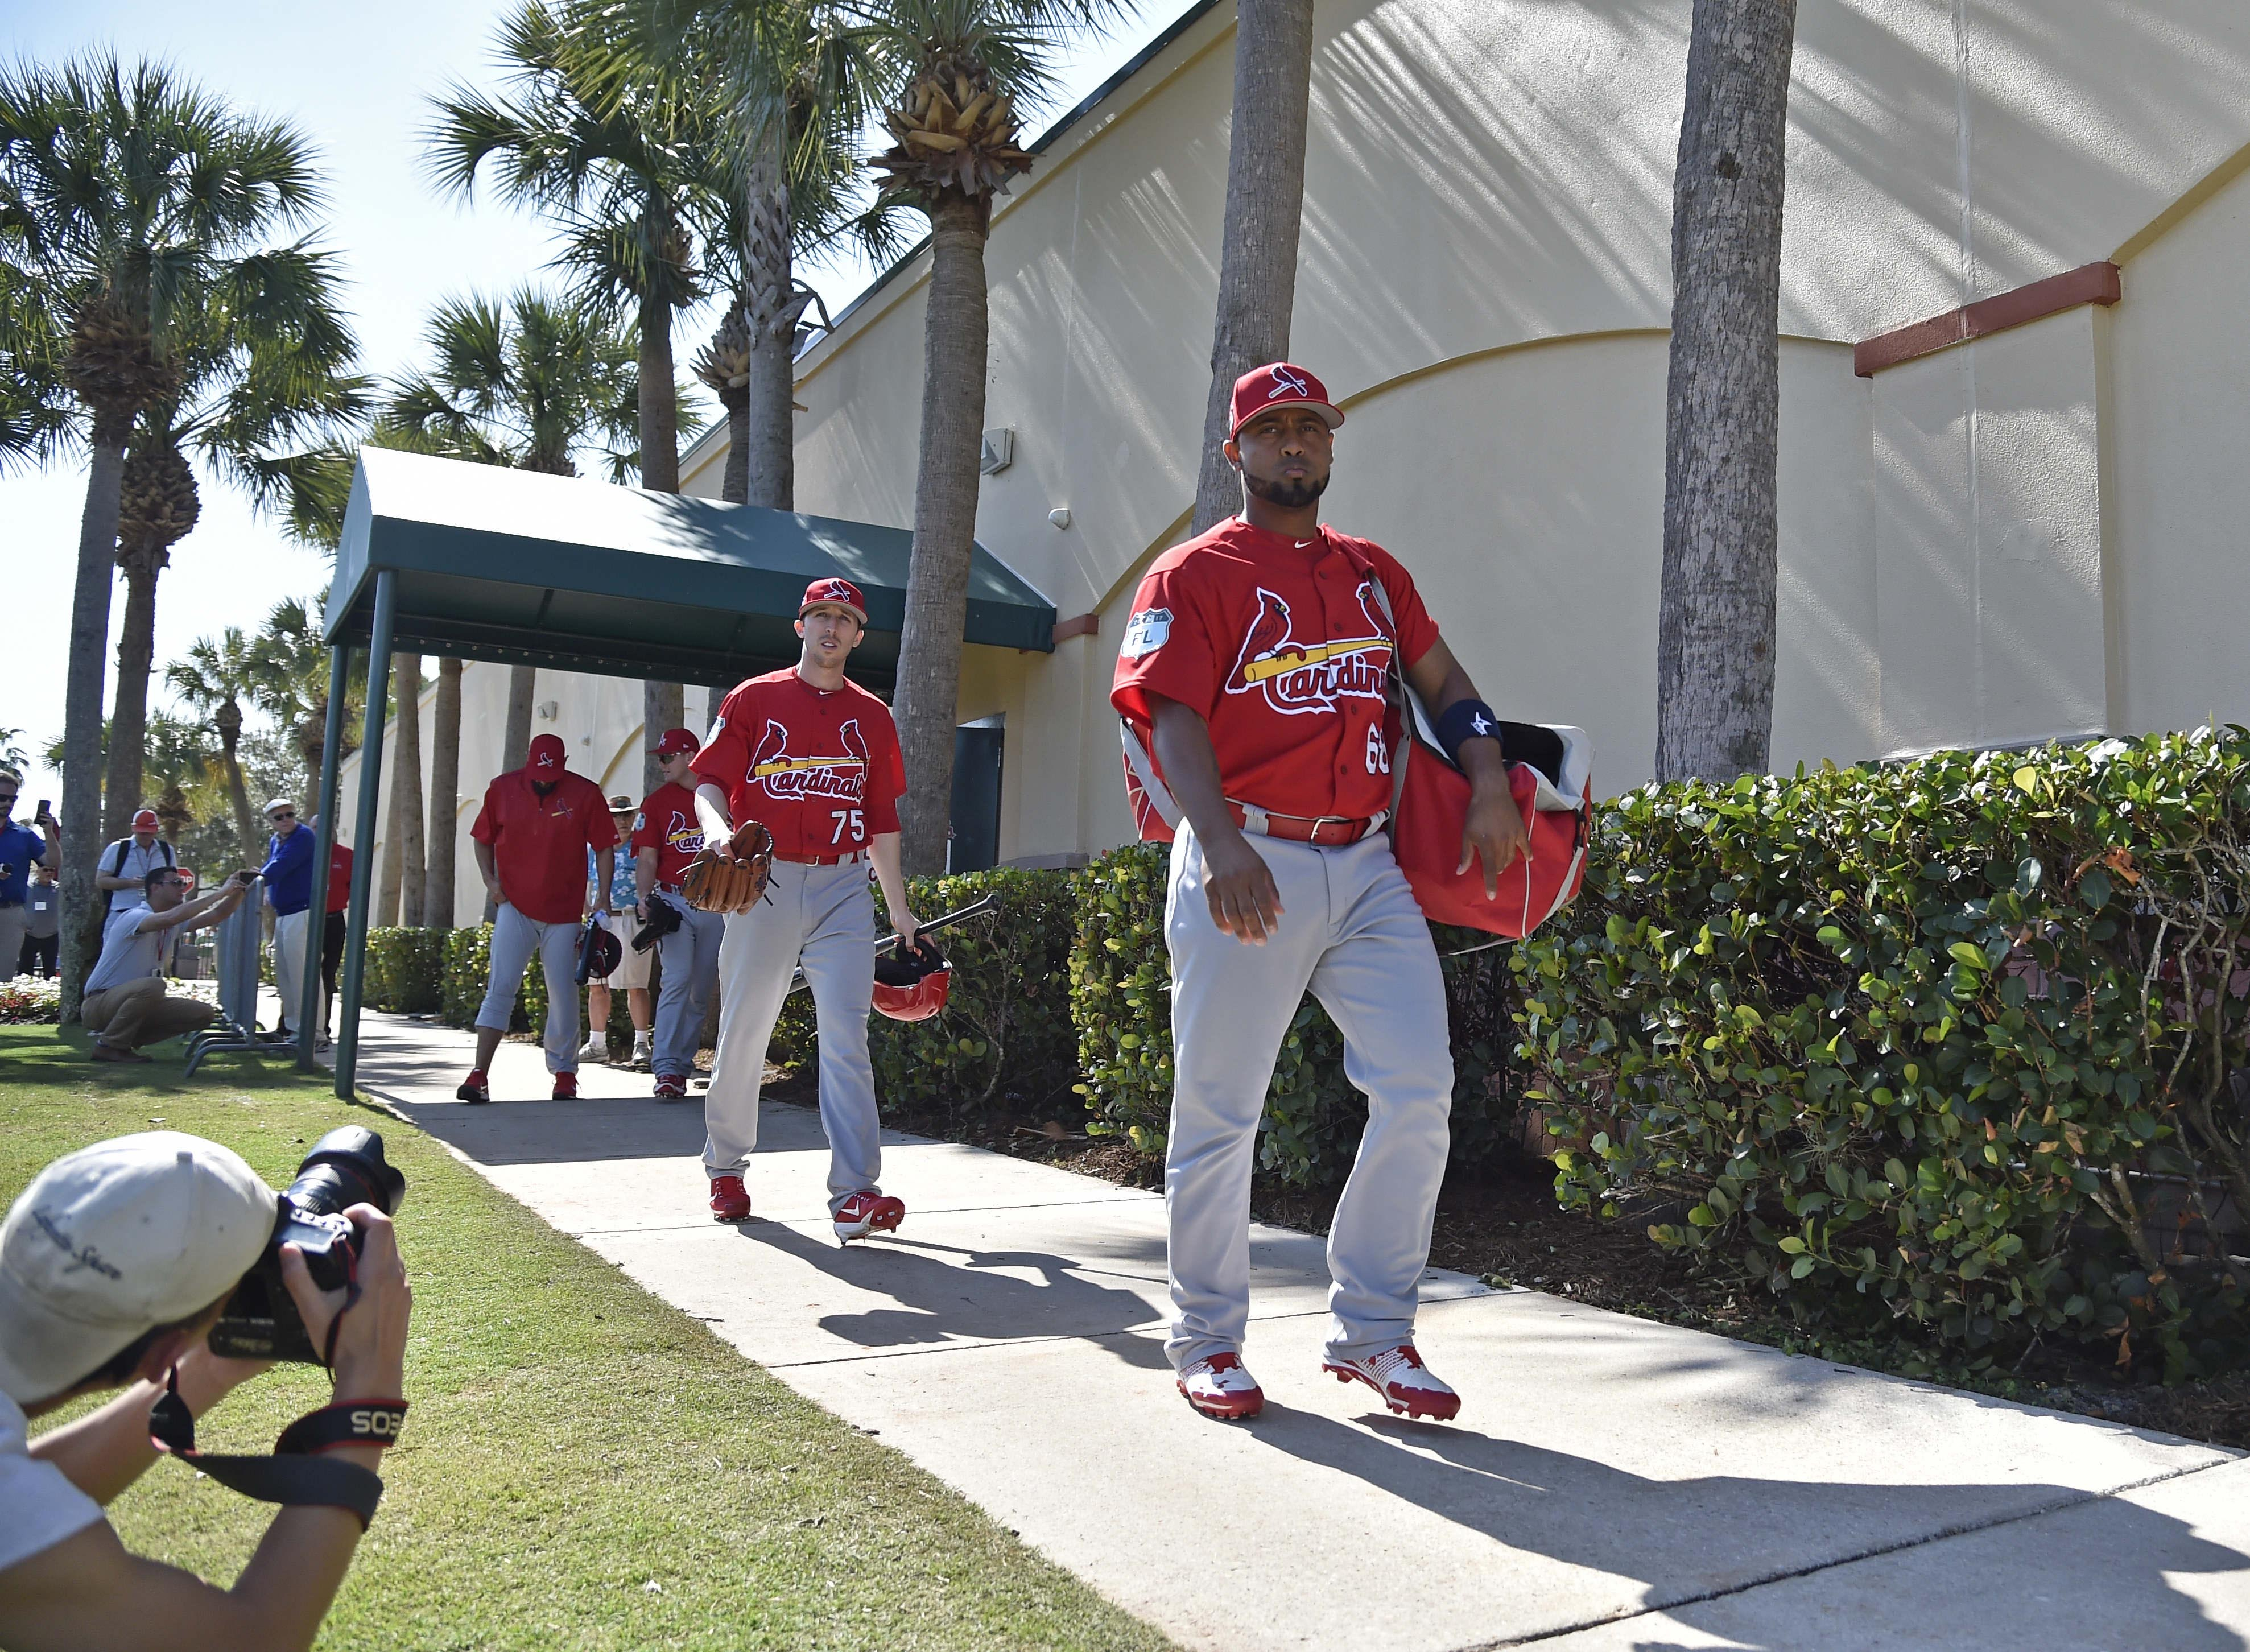 9882165-mlb-st.-louis-cardinals-workouts